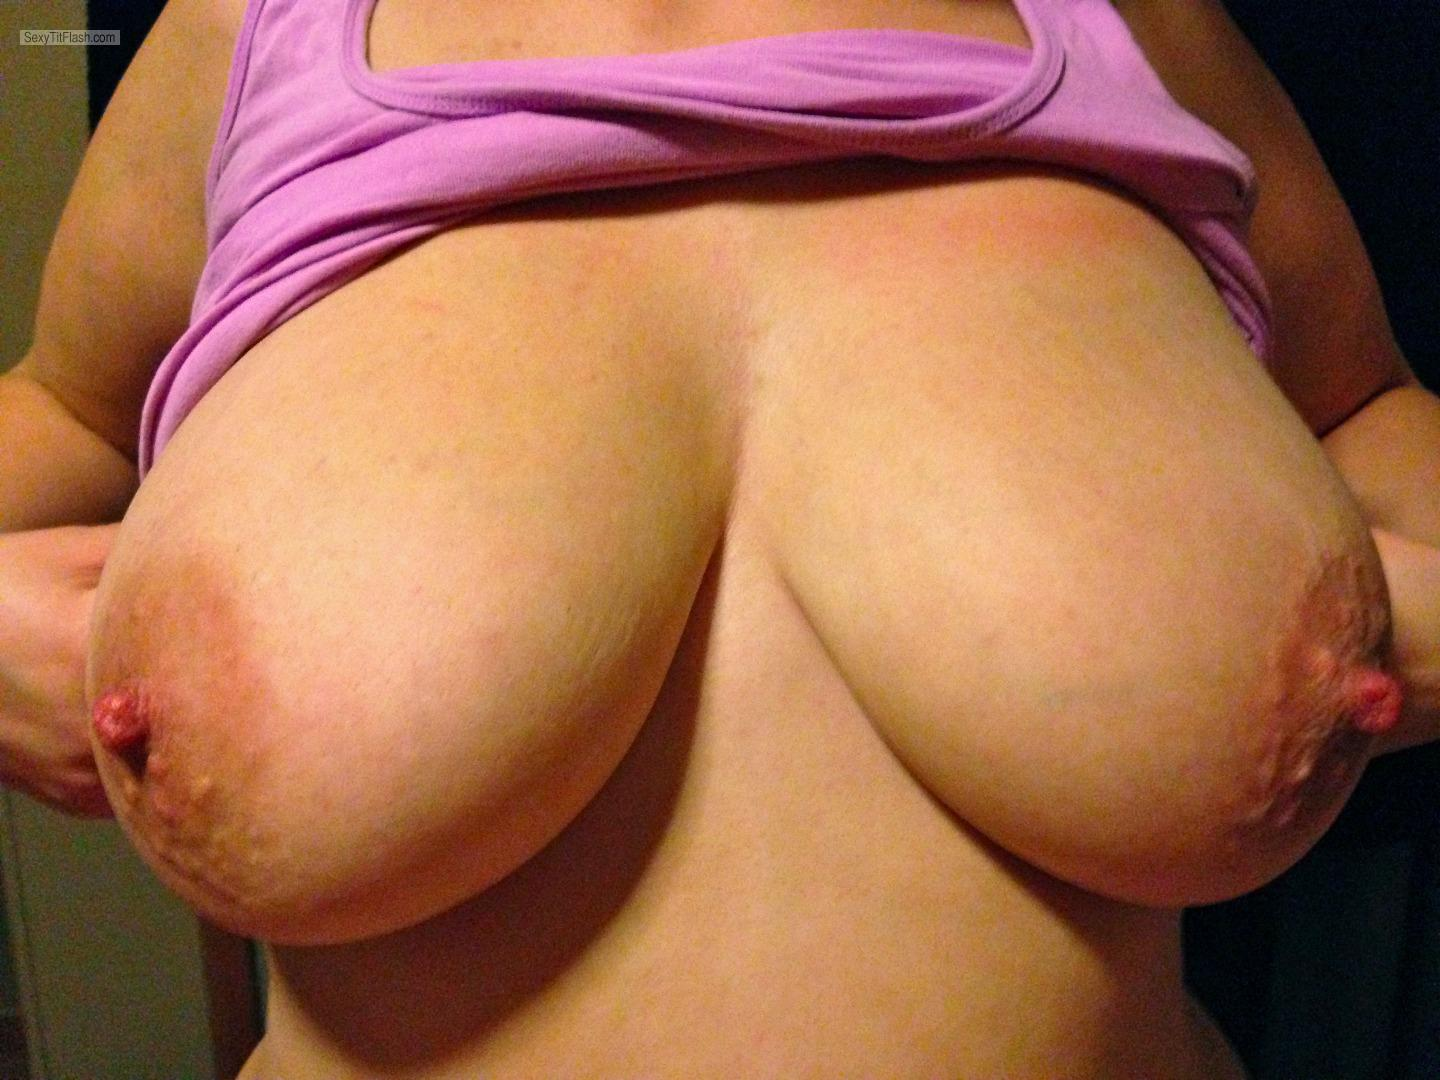 Tit Flash: My Very Big Tits - Thicknbusty from United Kingdom